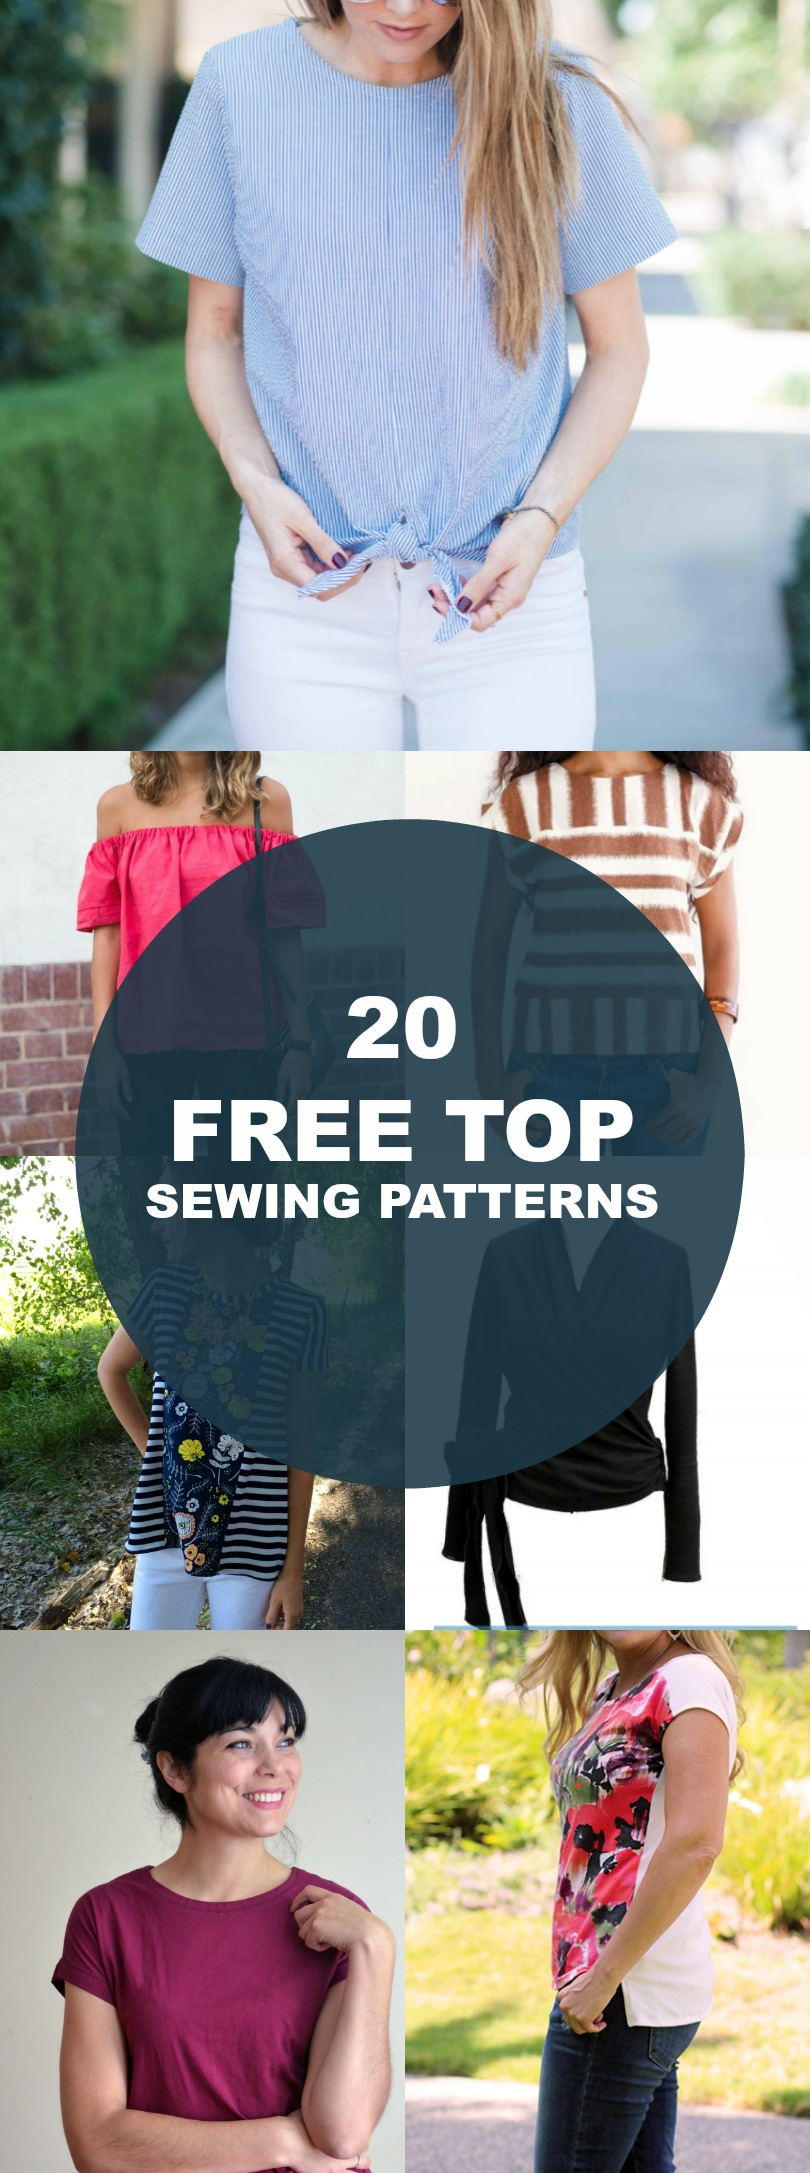 Free Sewing Patterns: 20 spring and summer tops and t-shirt tutorials